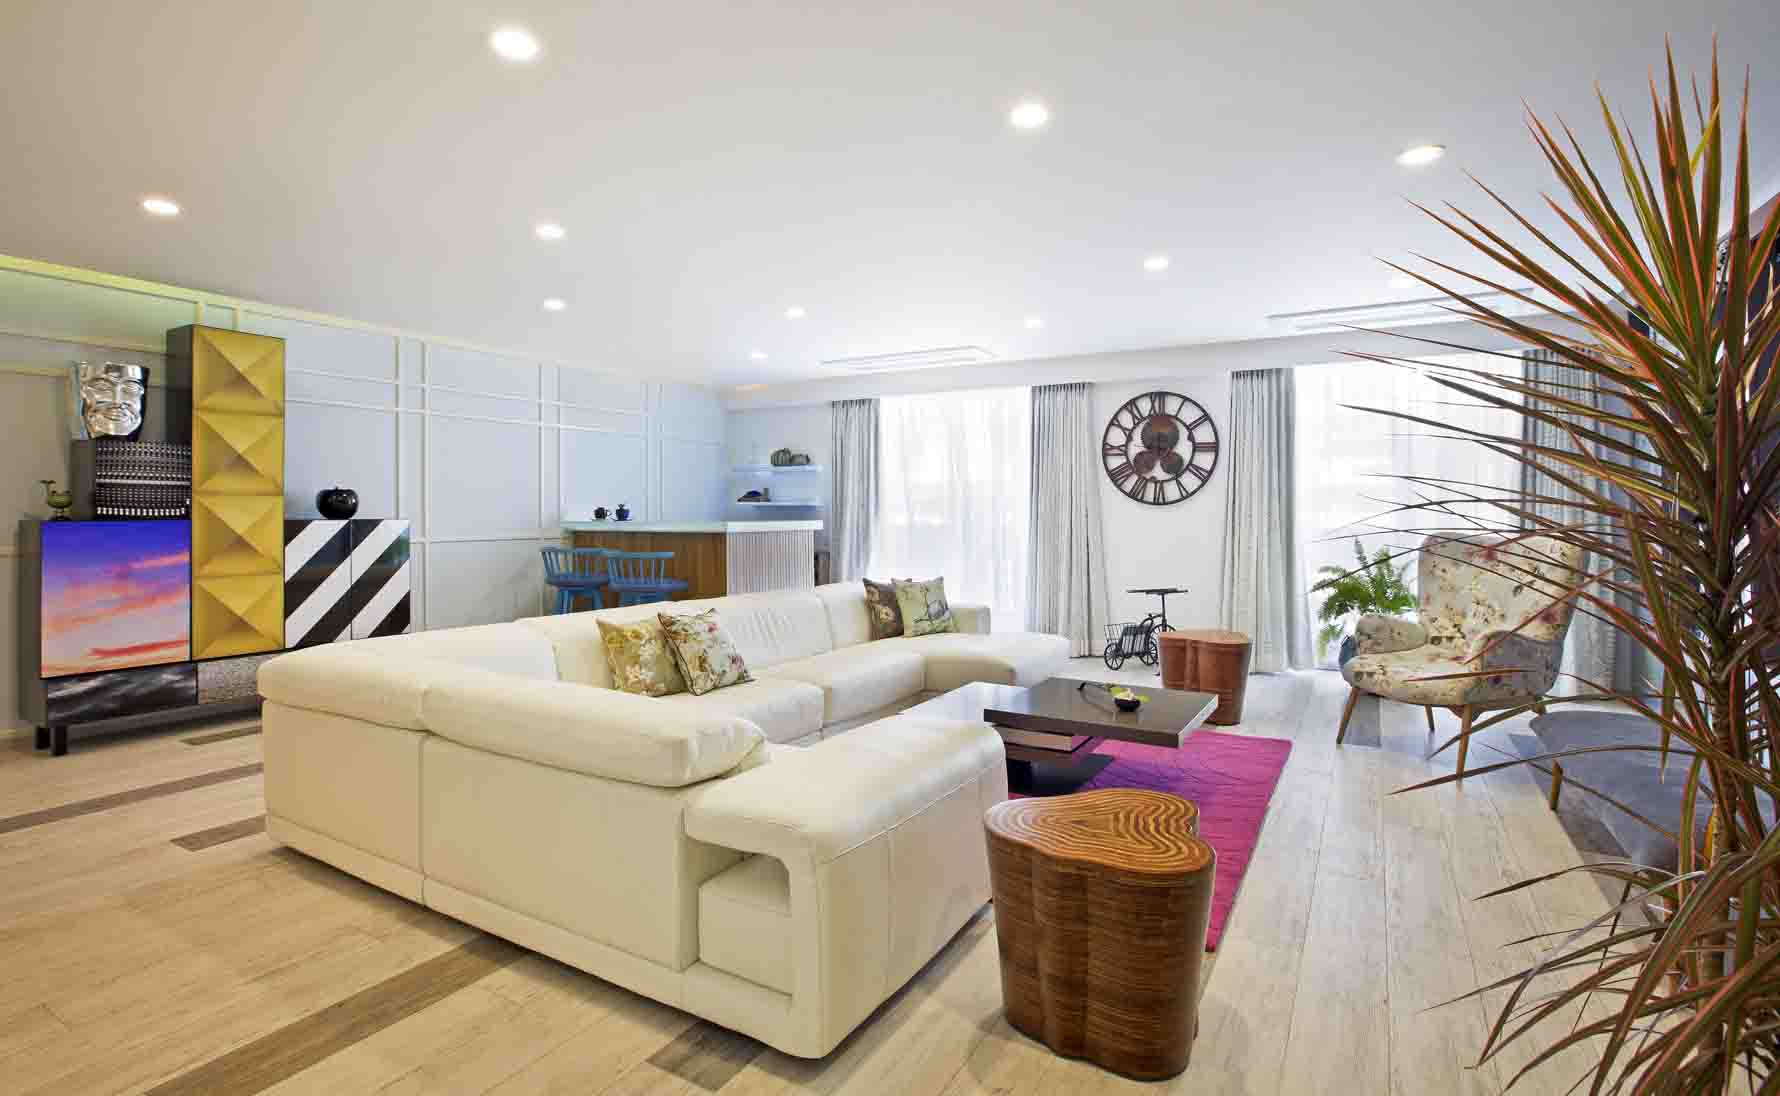 FADD Studio – Farah and Dhaval contemporary residence